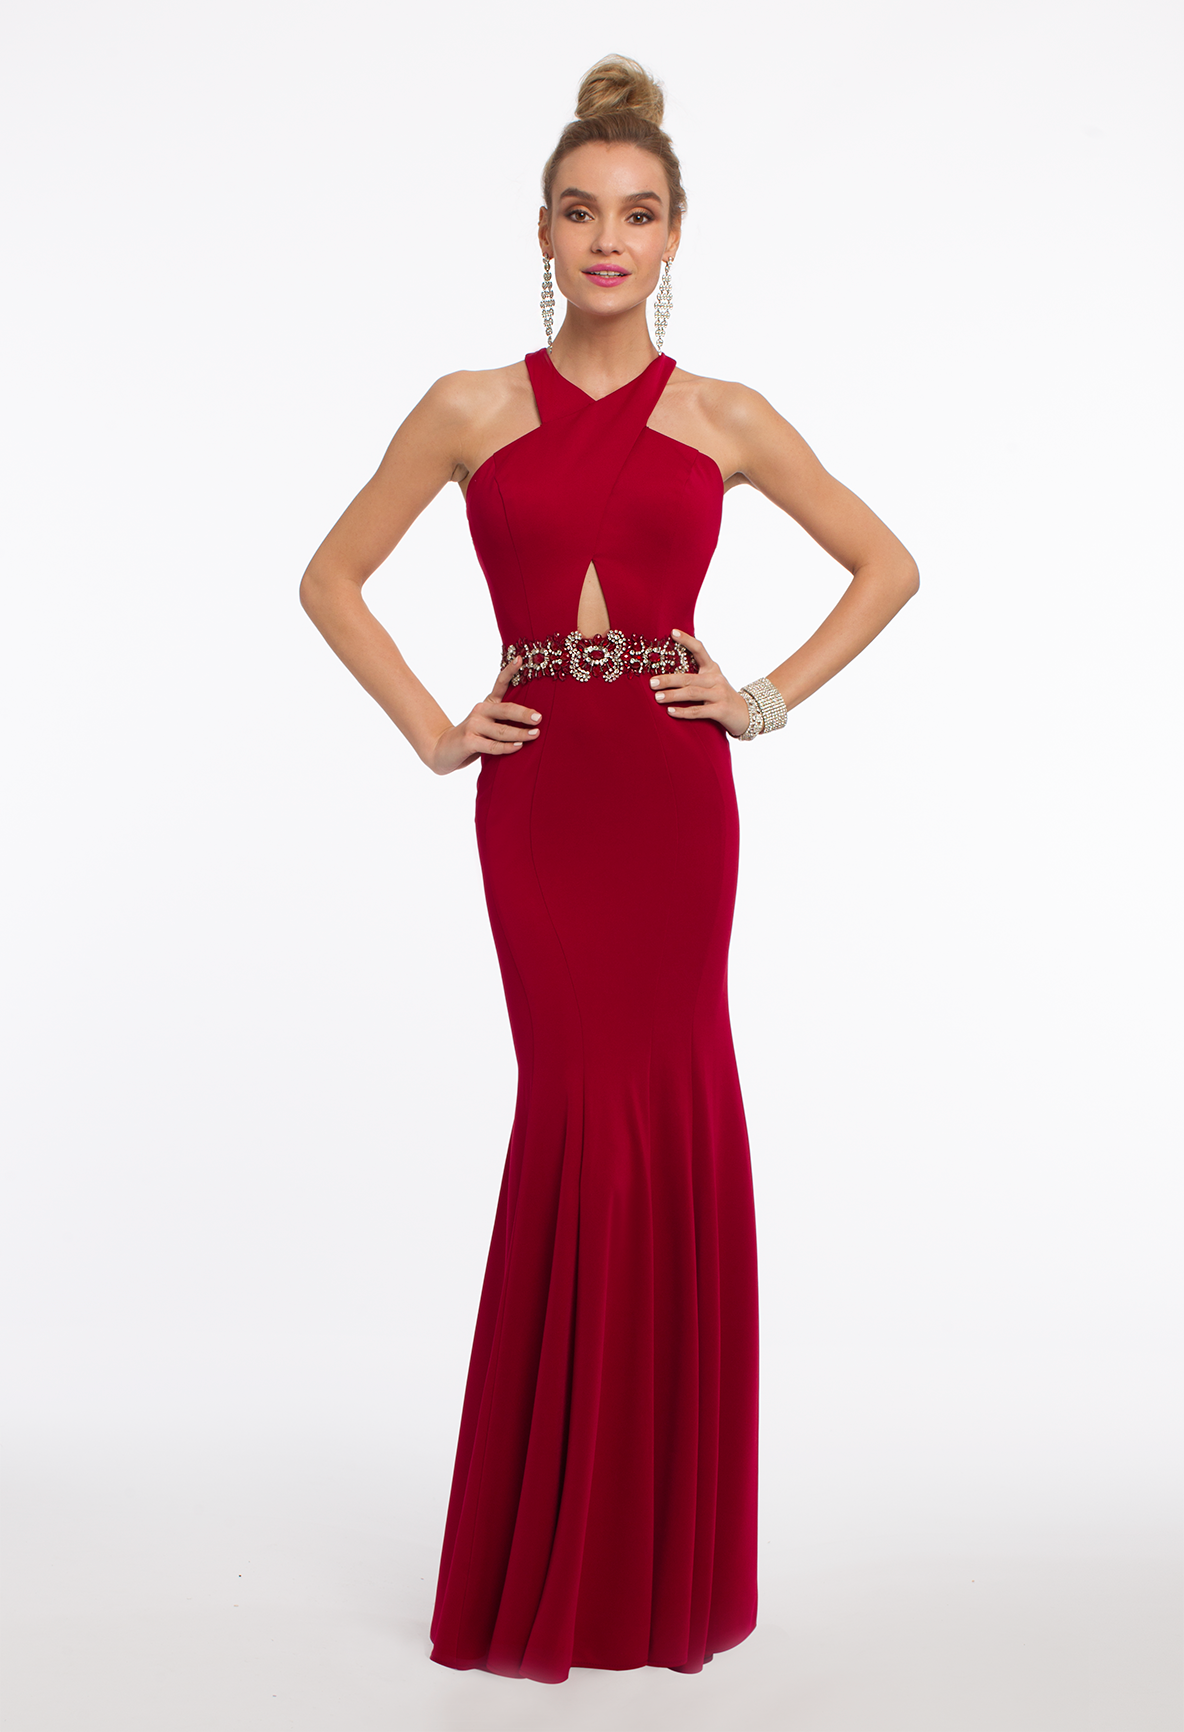 Flaunt Your Features In This Upscale Long Evening Dress The Sheath Style Criss Cross Halter Neckline Beaded Waistb Dresses Guest Dresses Wedding Guest Dress [ 1732 x 1184 Pixel ]